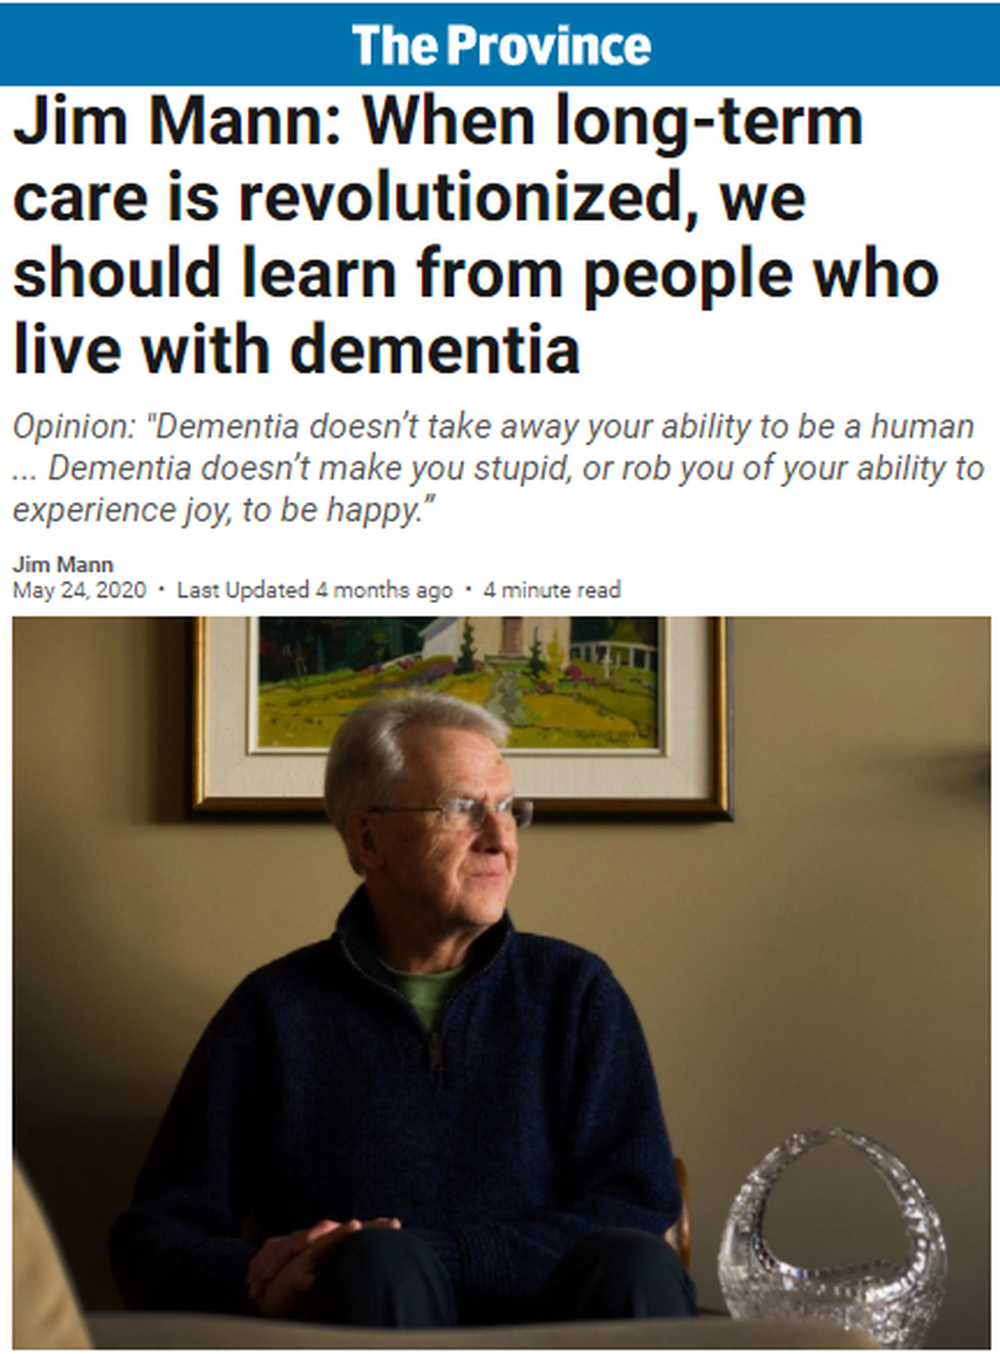 Jim-Mann-We-should-learn-from-people-who-live-with-dementia-The-Province.